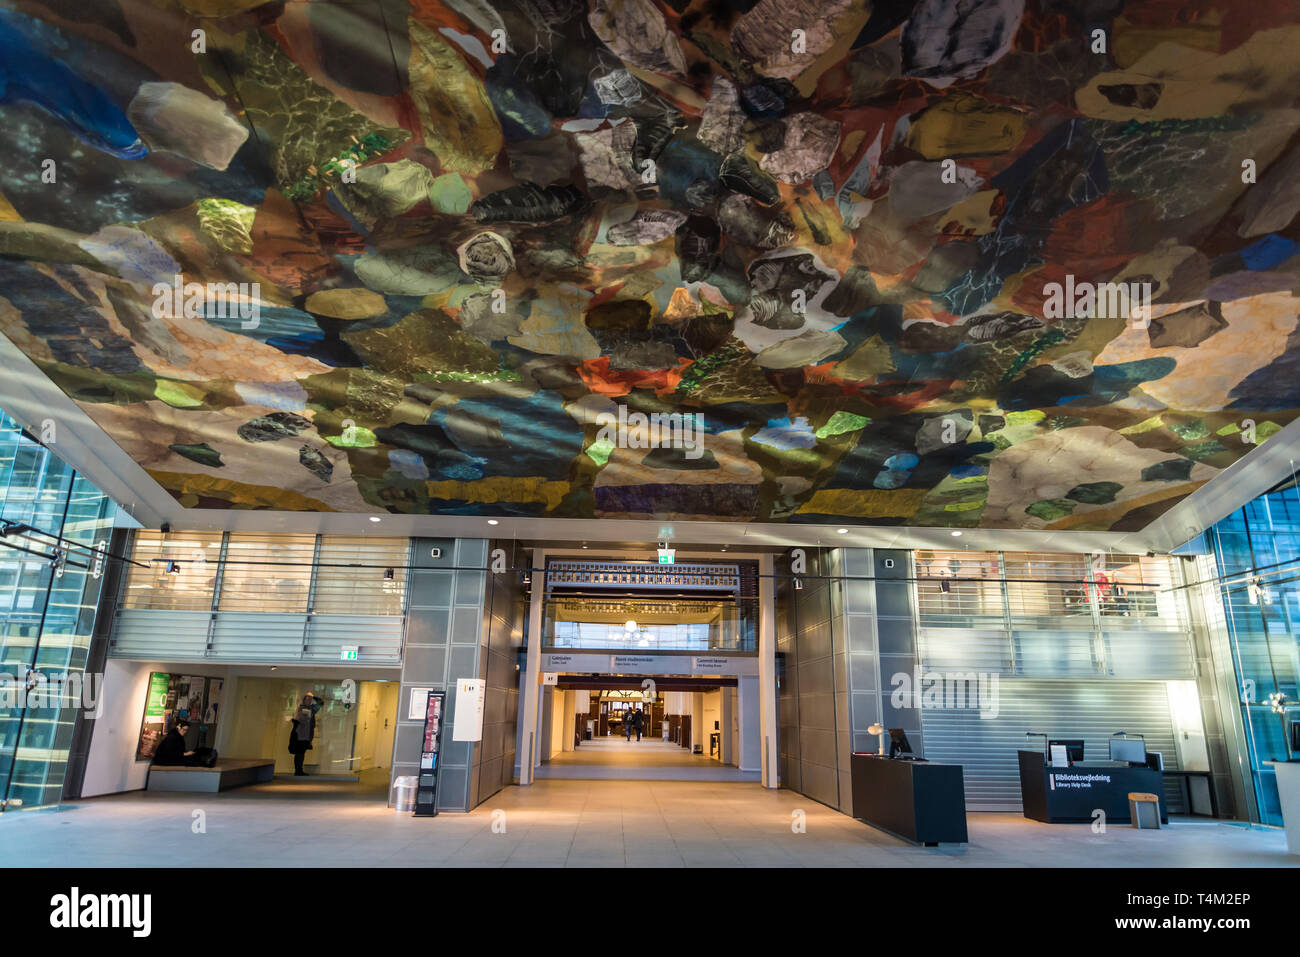 Ceiling painting in Black Diamond building, a modern waterfront extension to the Royal Danish Library's old building on Slotsholmen in central Copenha Stock Photo